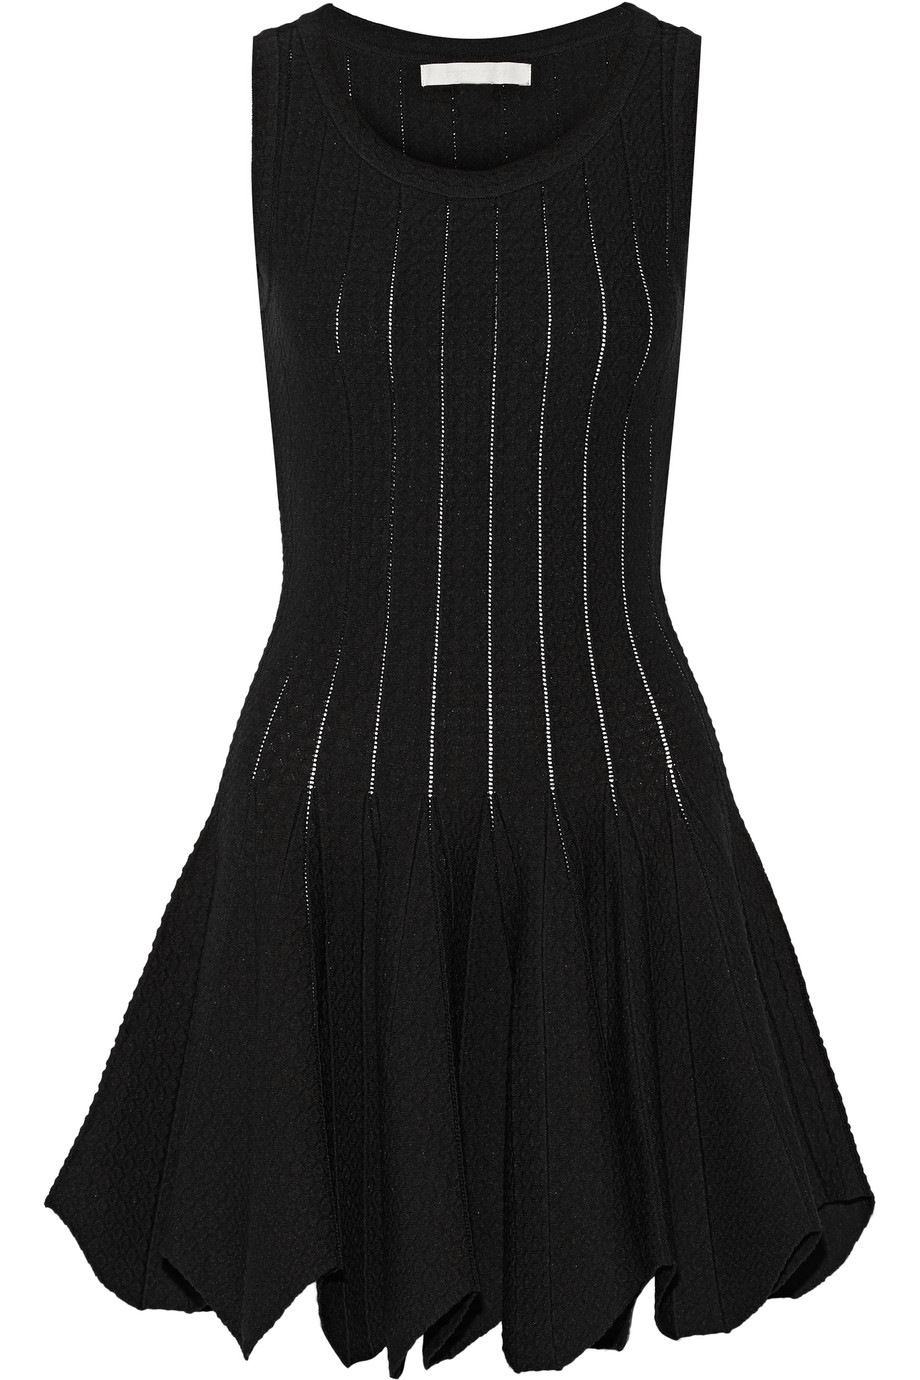 Pointelle-Paneled Stretch-Knit Mini Dress, Jonathan Simkhai, Black, Women's